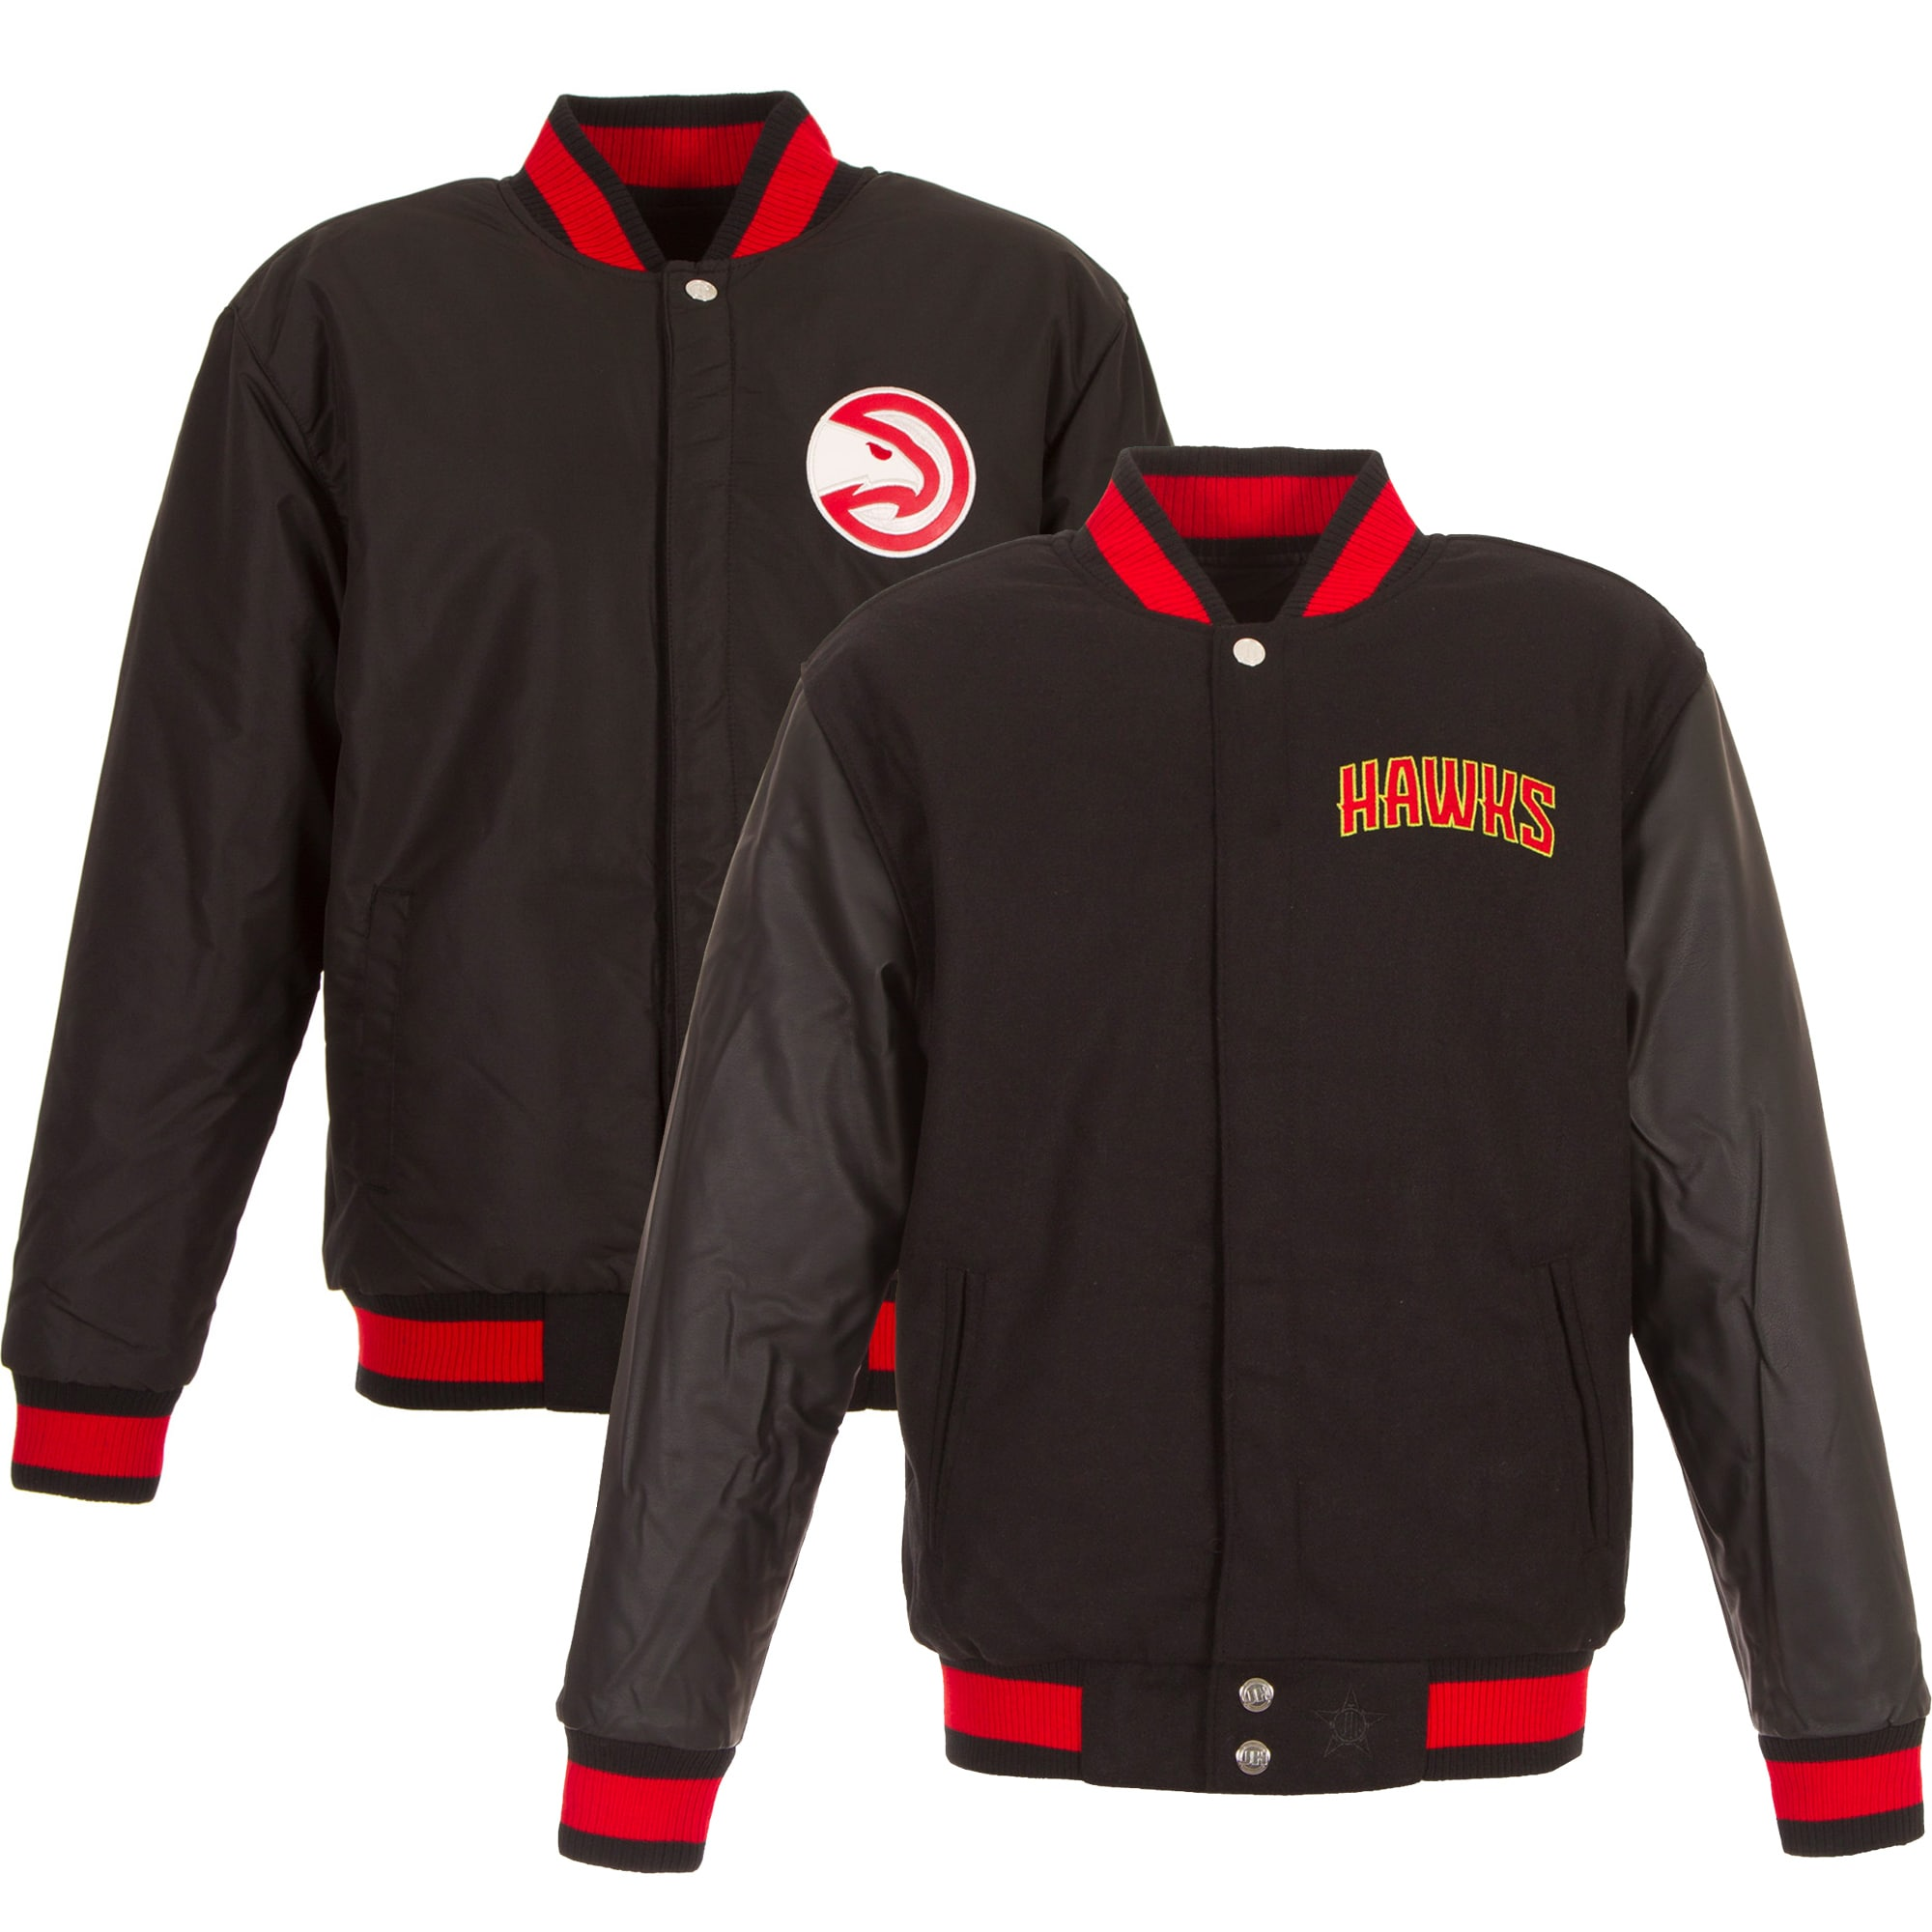 Atlanta Hawks JH Design Reversible Polyester Jacket with Faux Leather Sleeves - Black